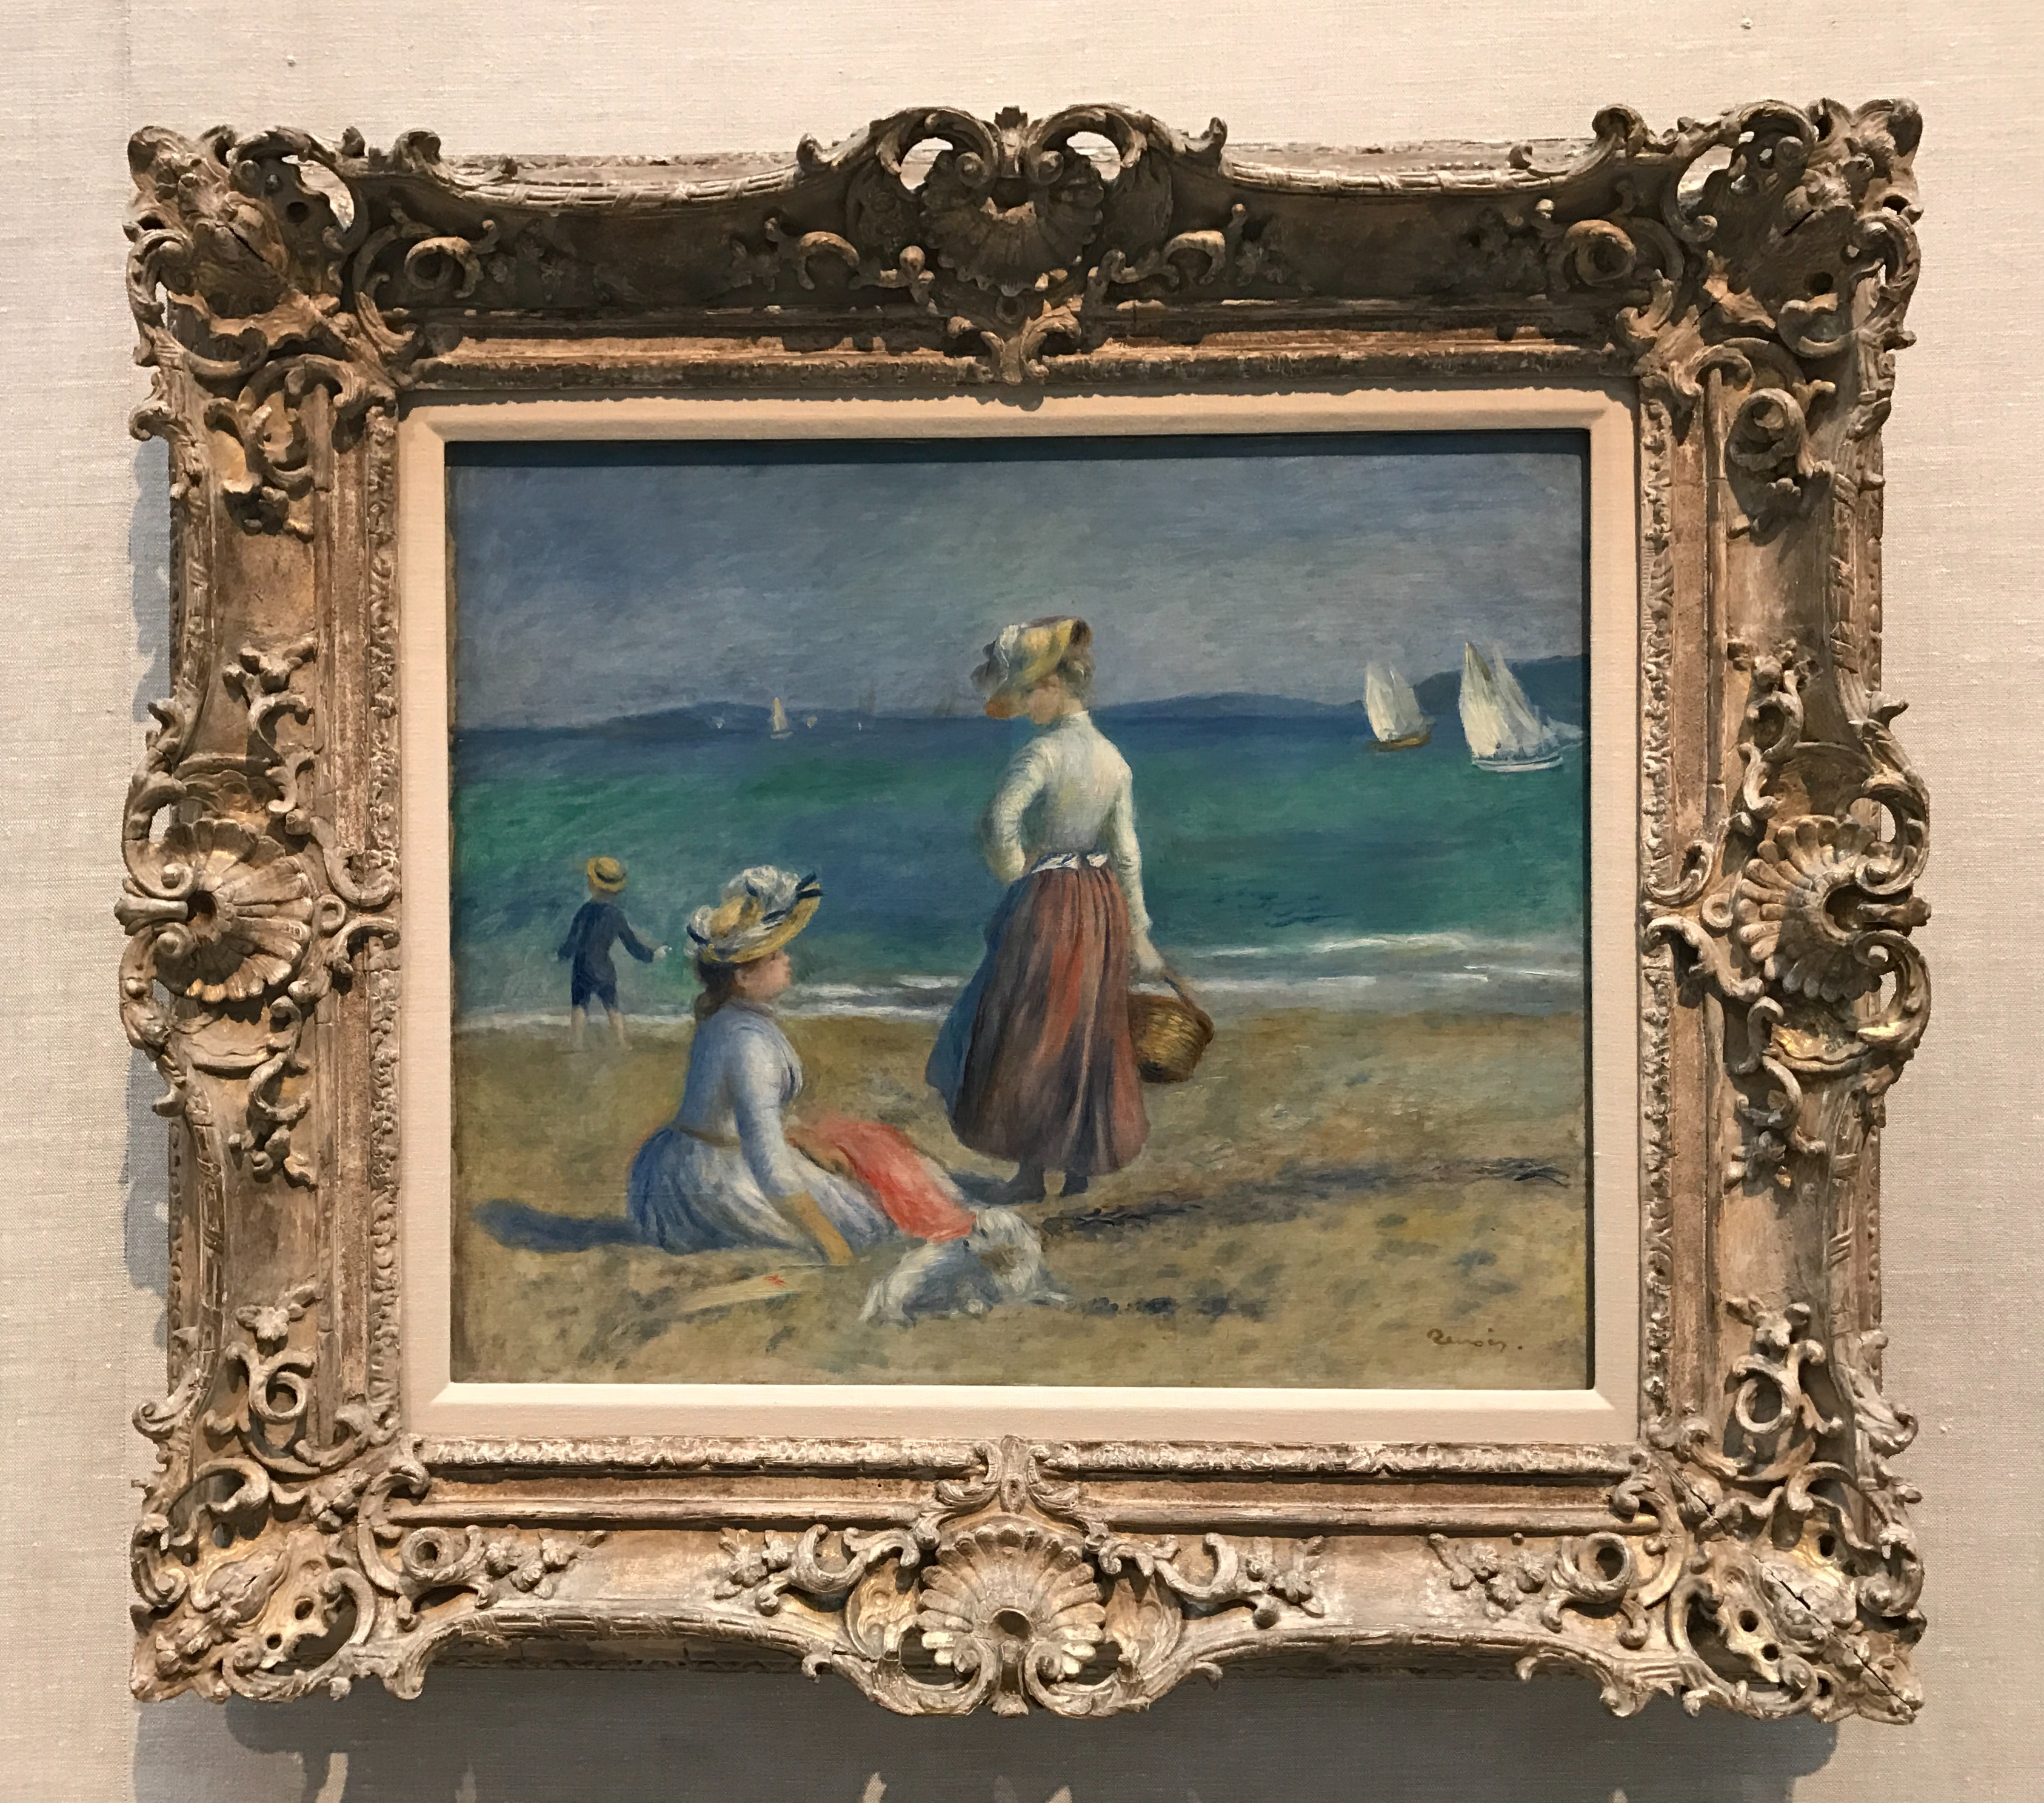 Figures on the Beach, by Pierre Auguste Renoir, 1890, my photo